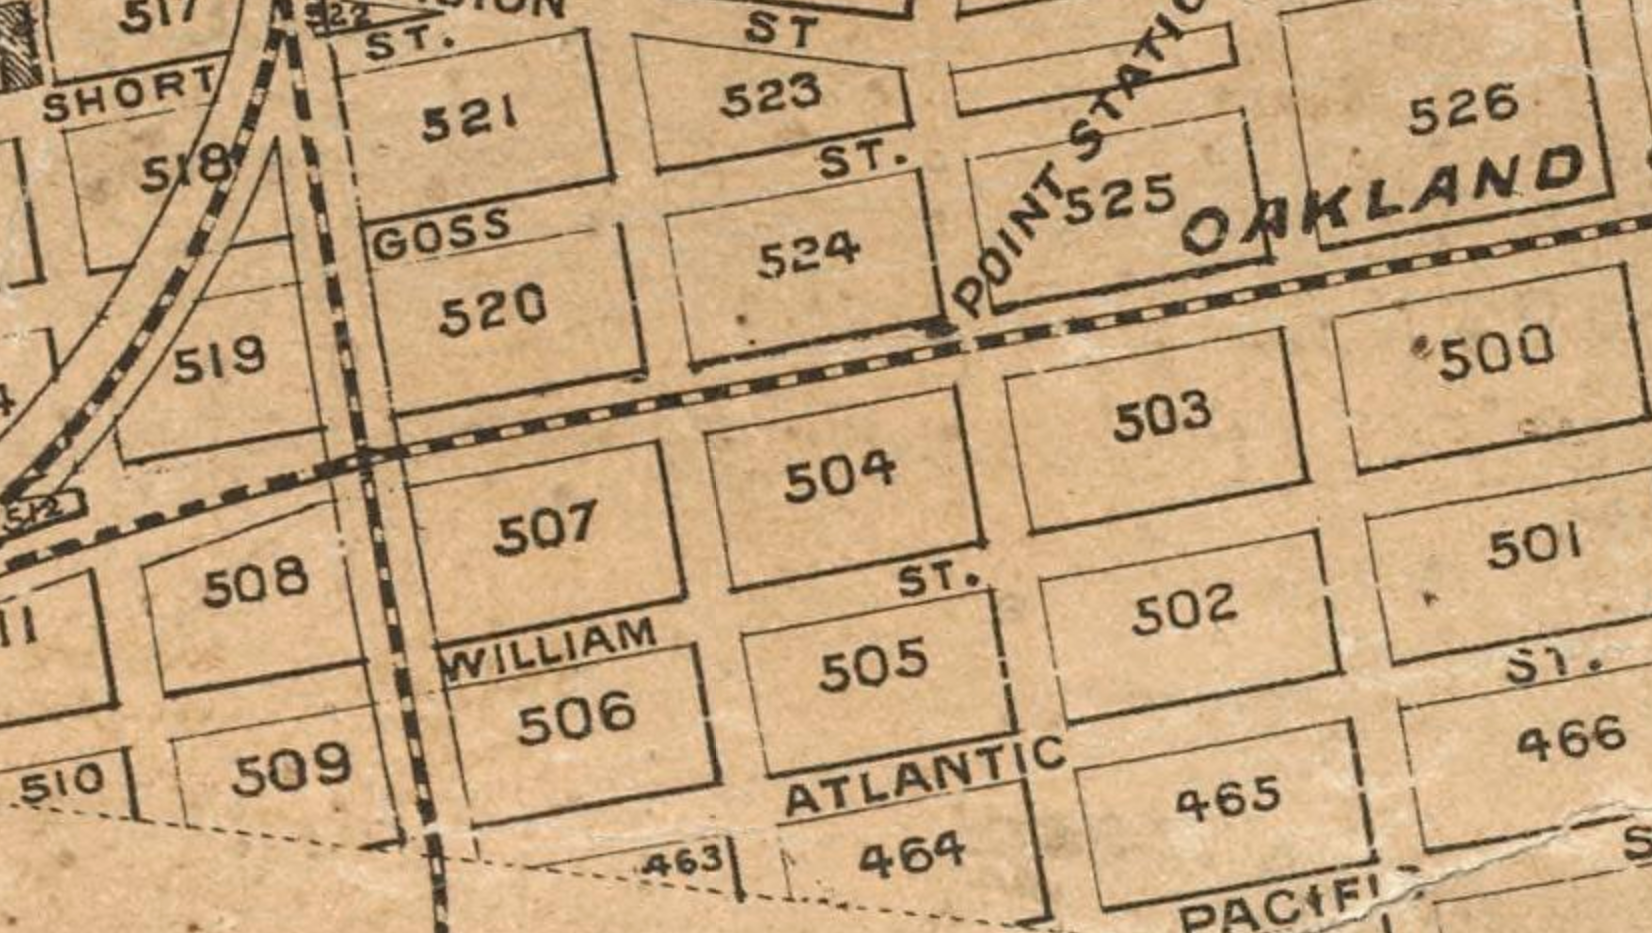 Map of west oakland 7th street.png